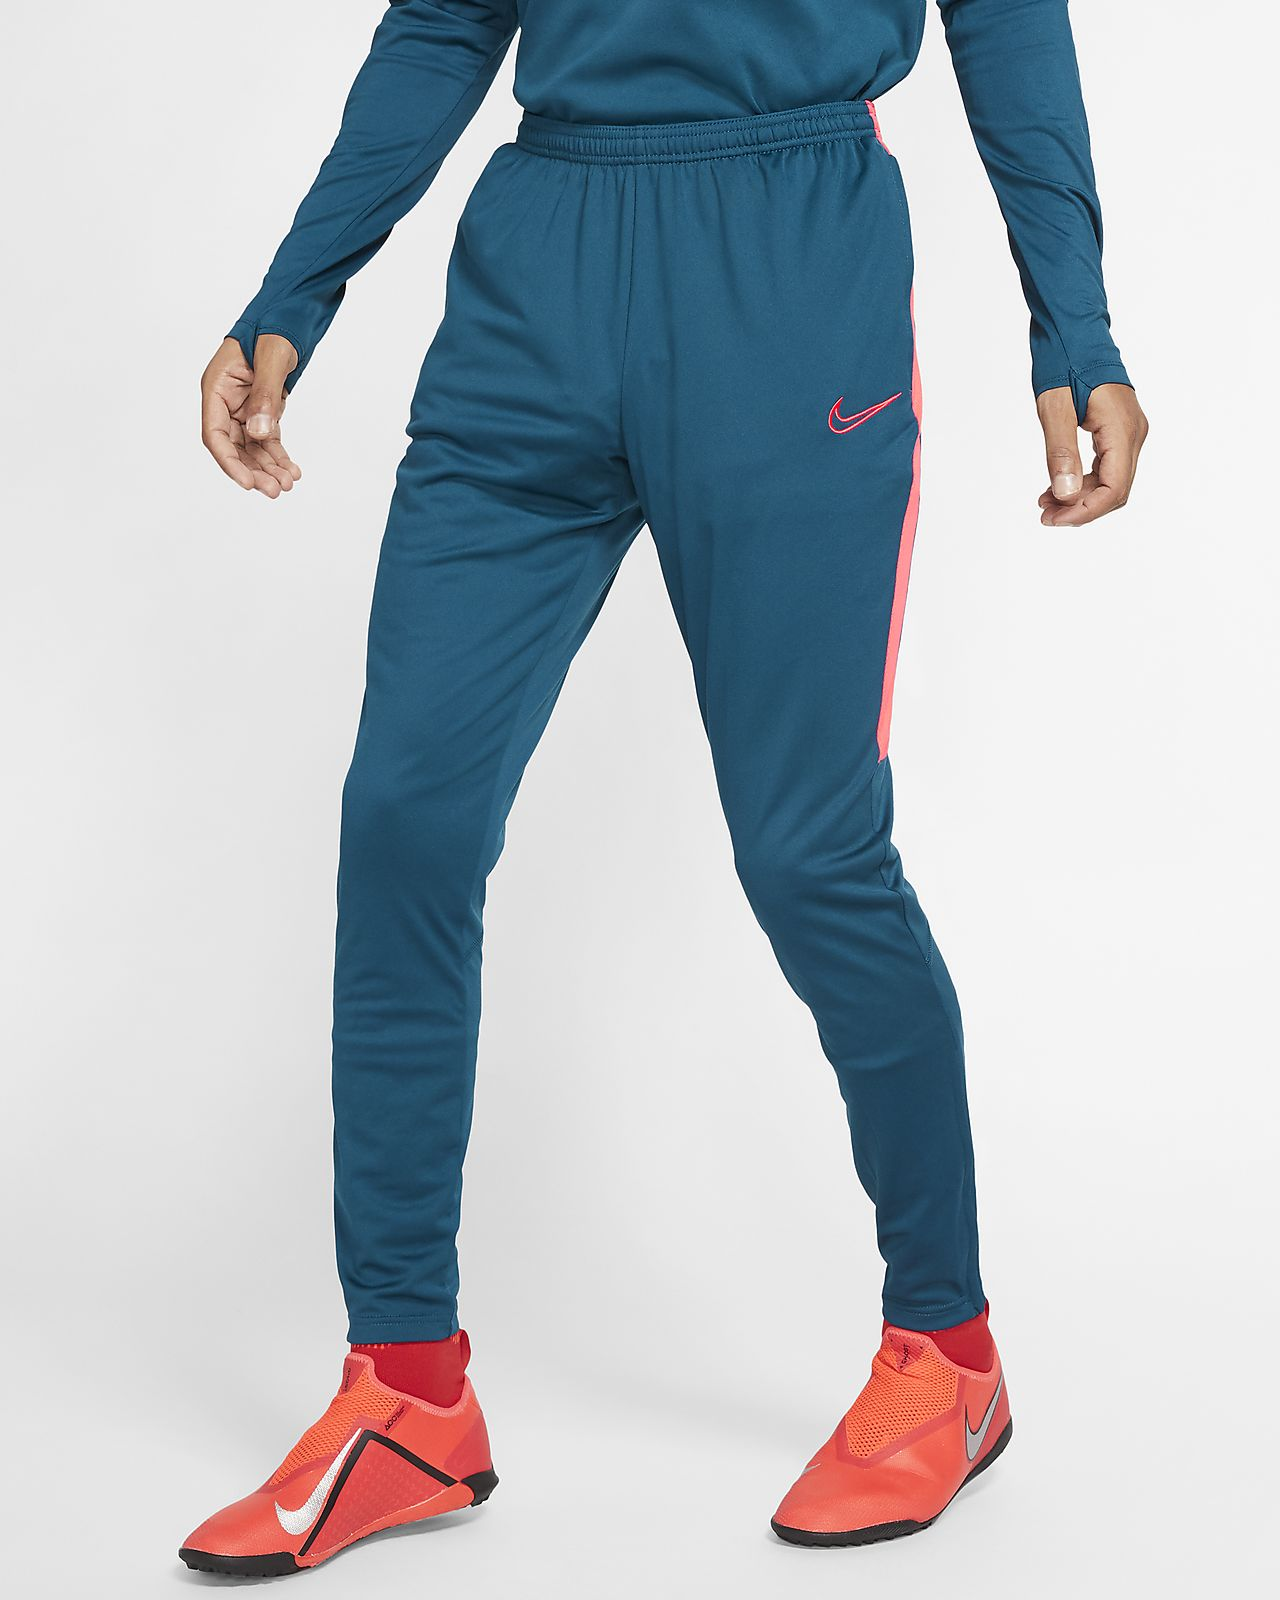 NIKE ACADEMY PANTS Trackpants Running Fitness Sport Mens